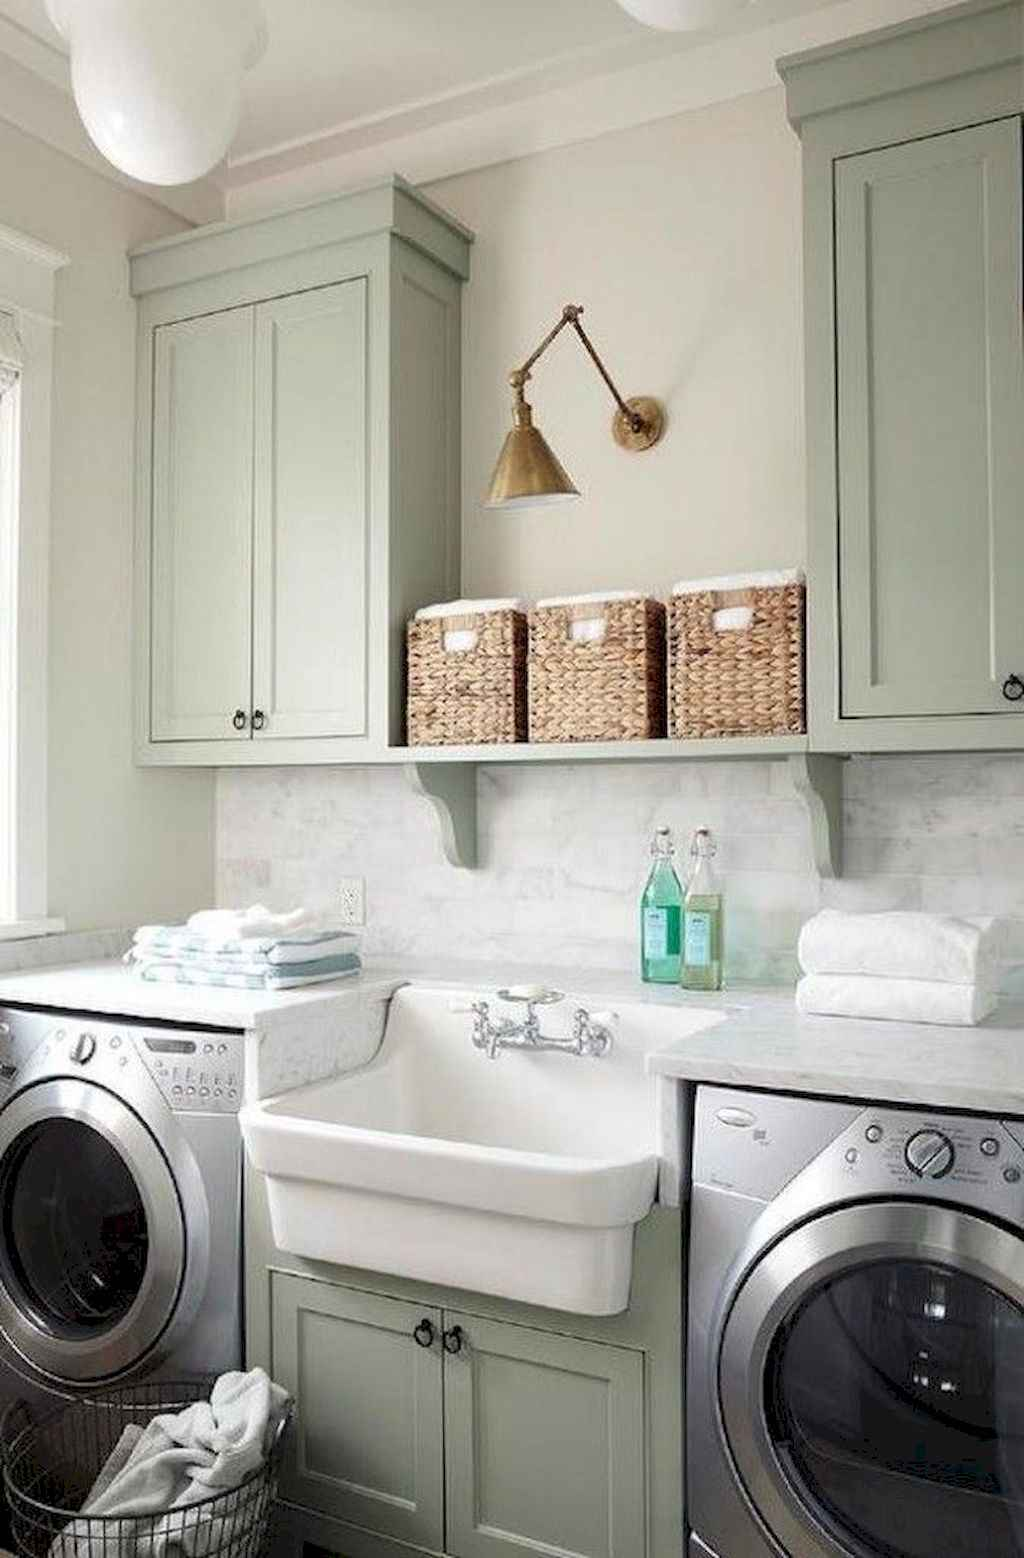 45 Rustic Farmhouse Laundry Room Design Ideas and Makeover (28)